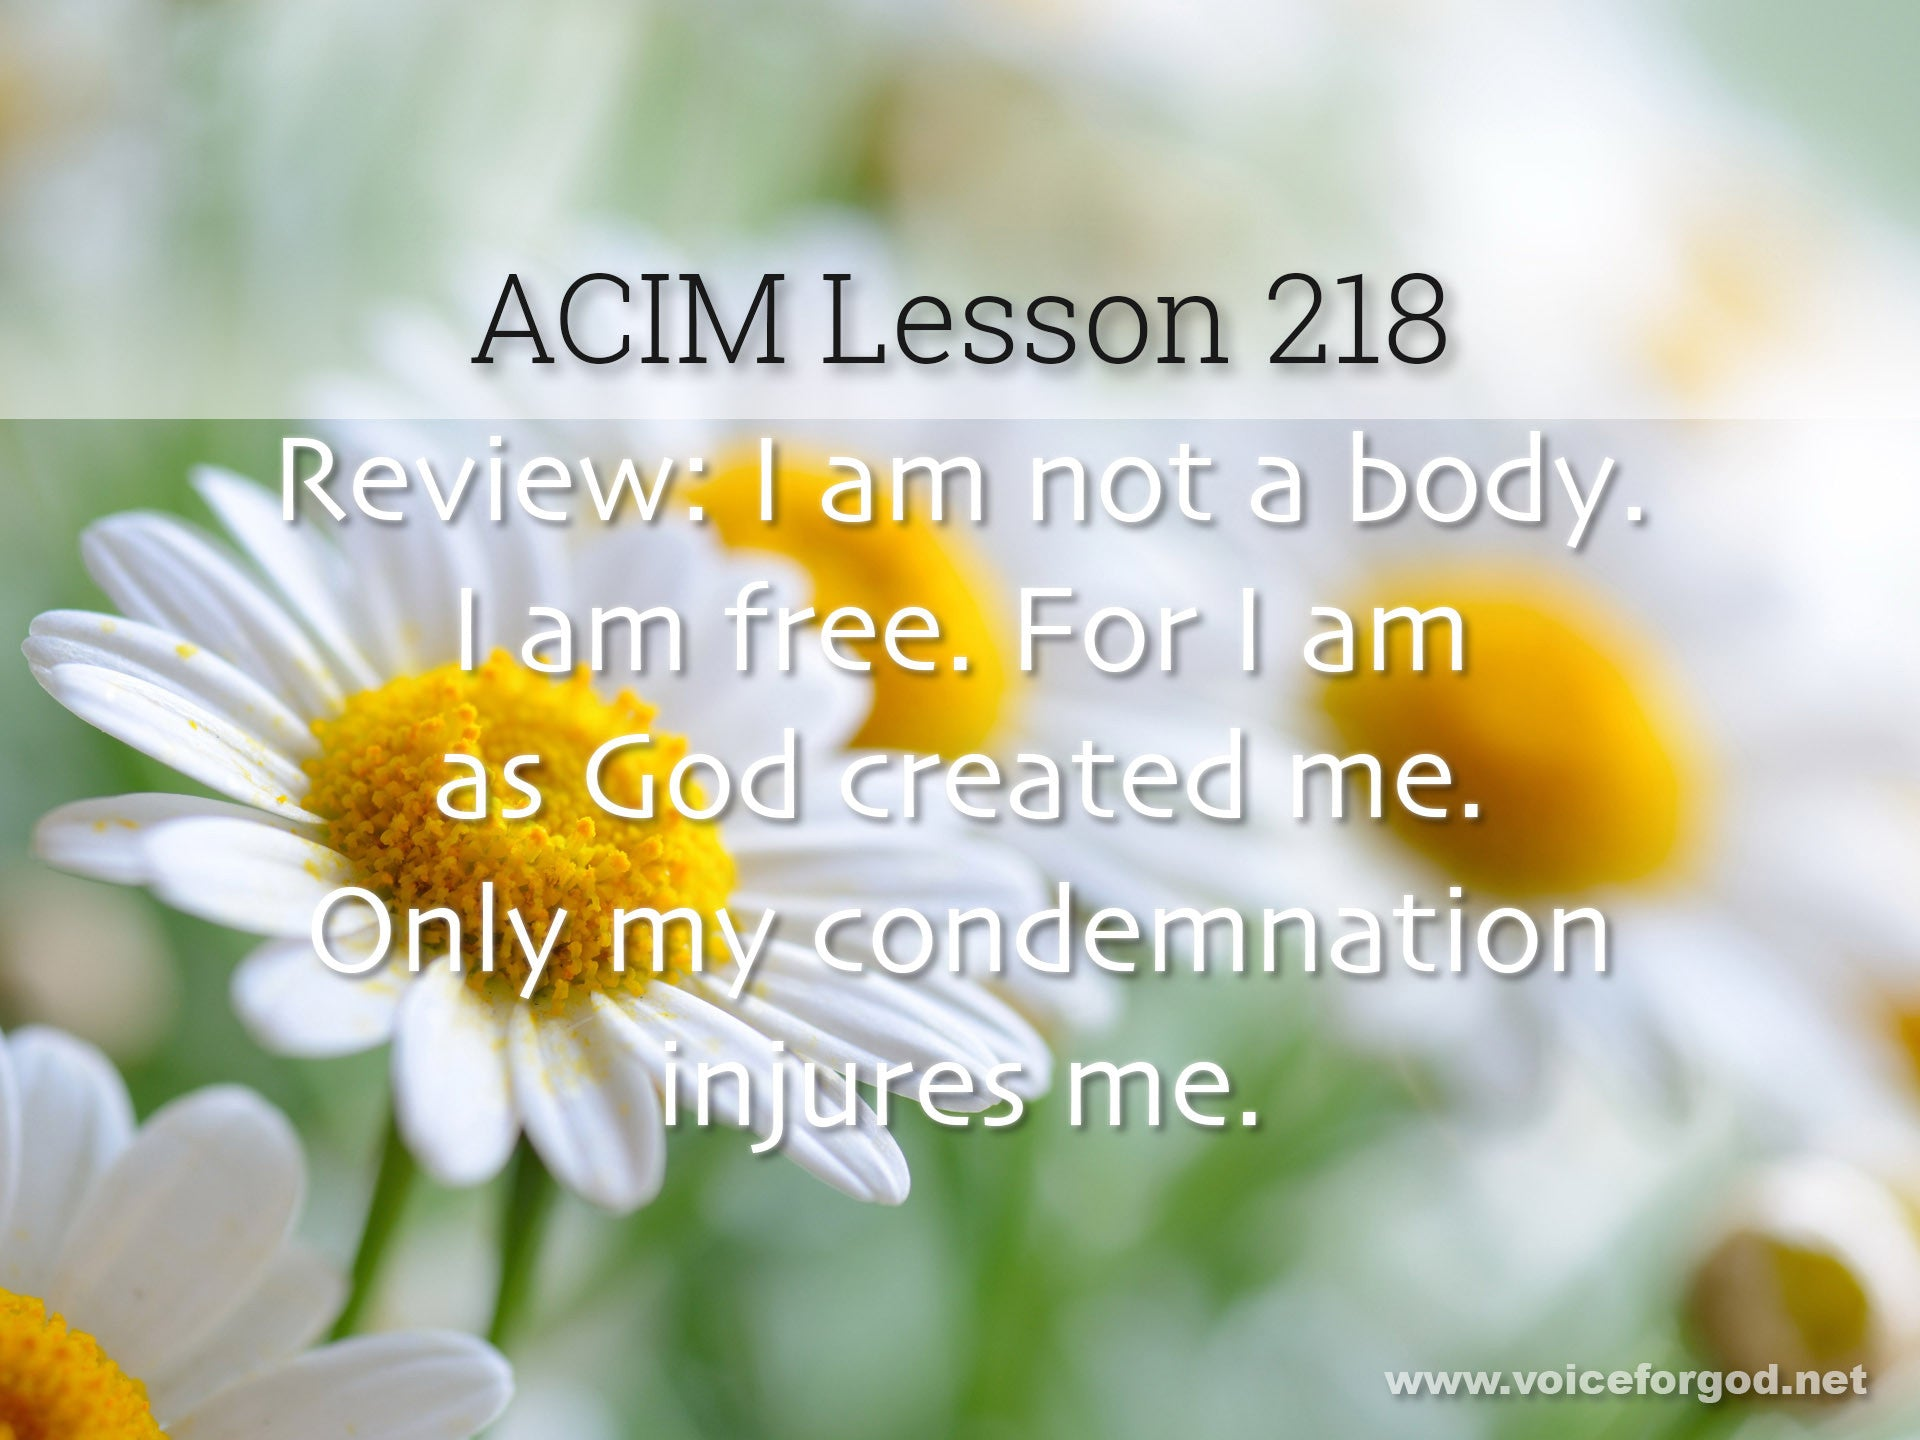 ACIM Lesson 218 - A Course in Miracles Workbook Lesson 218